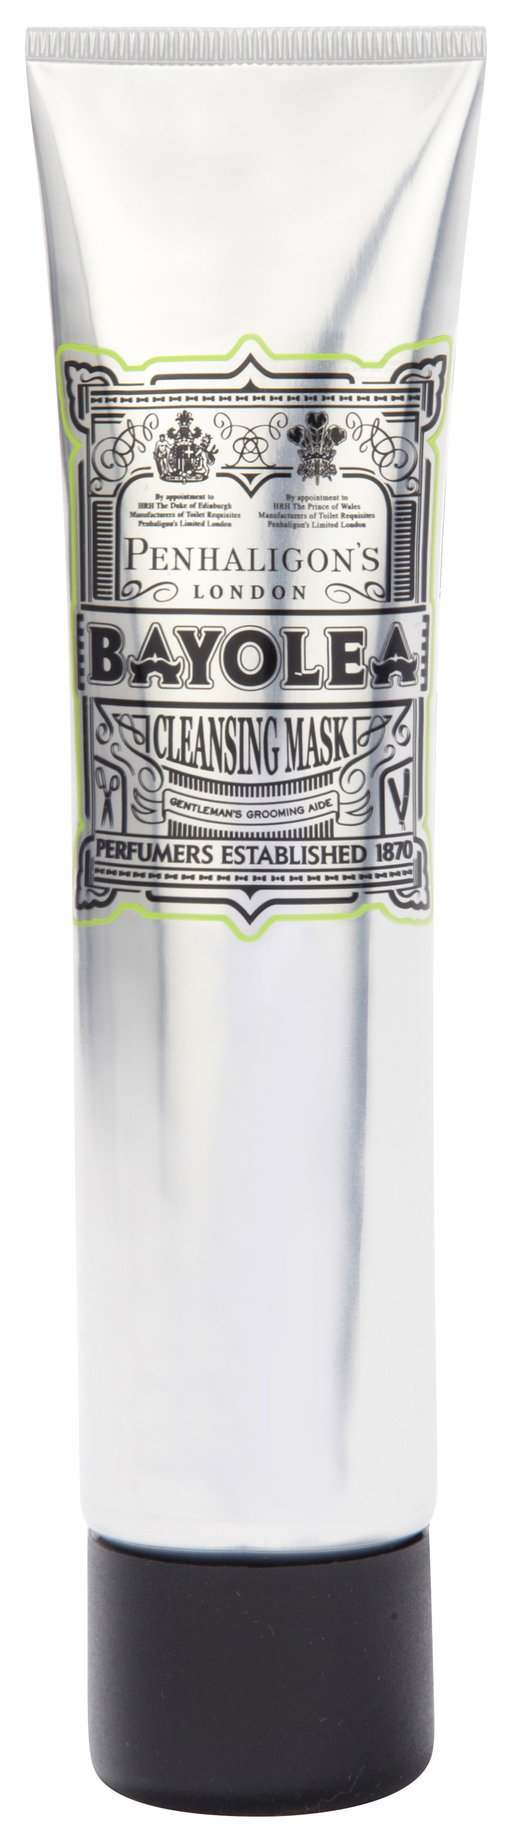 Penhaligon's Bayolea Cleansing Mask